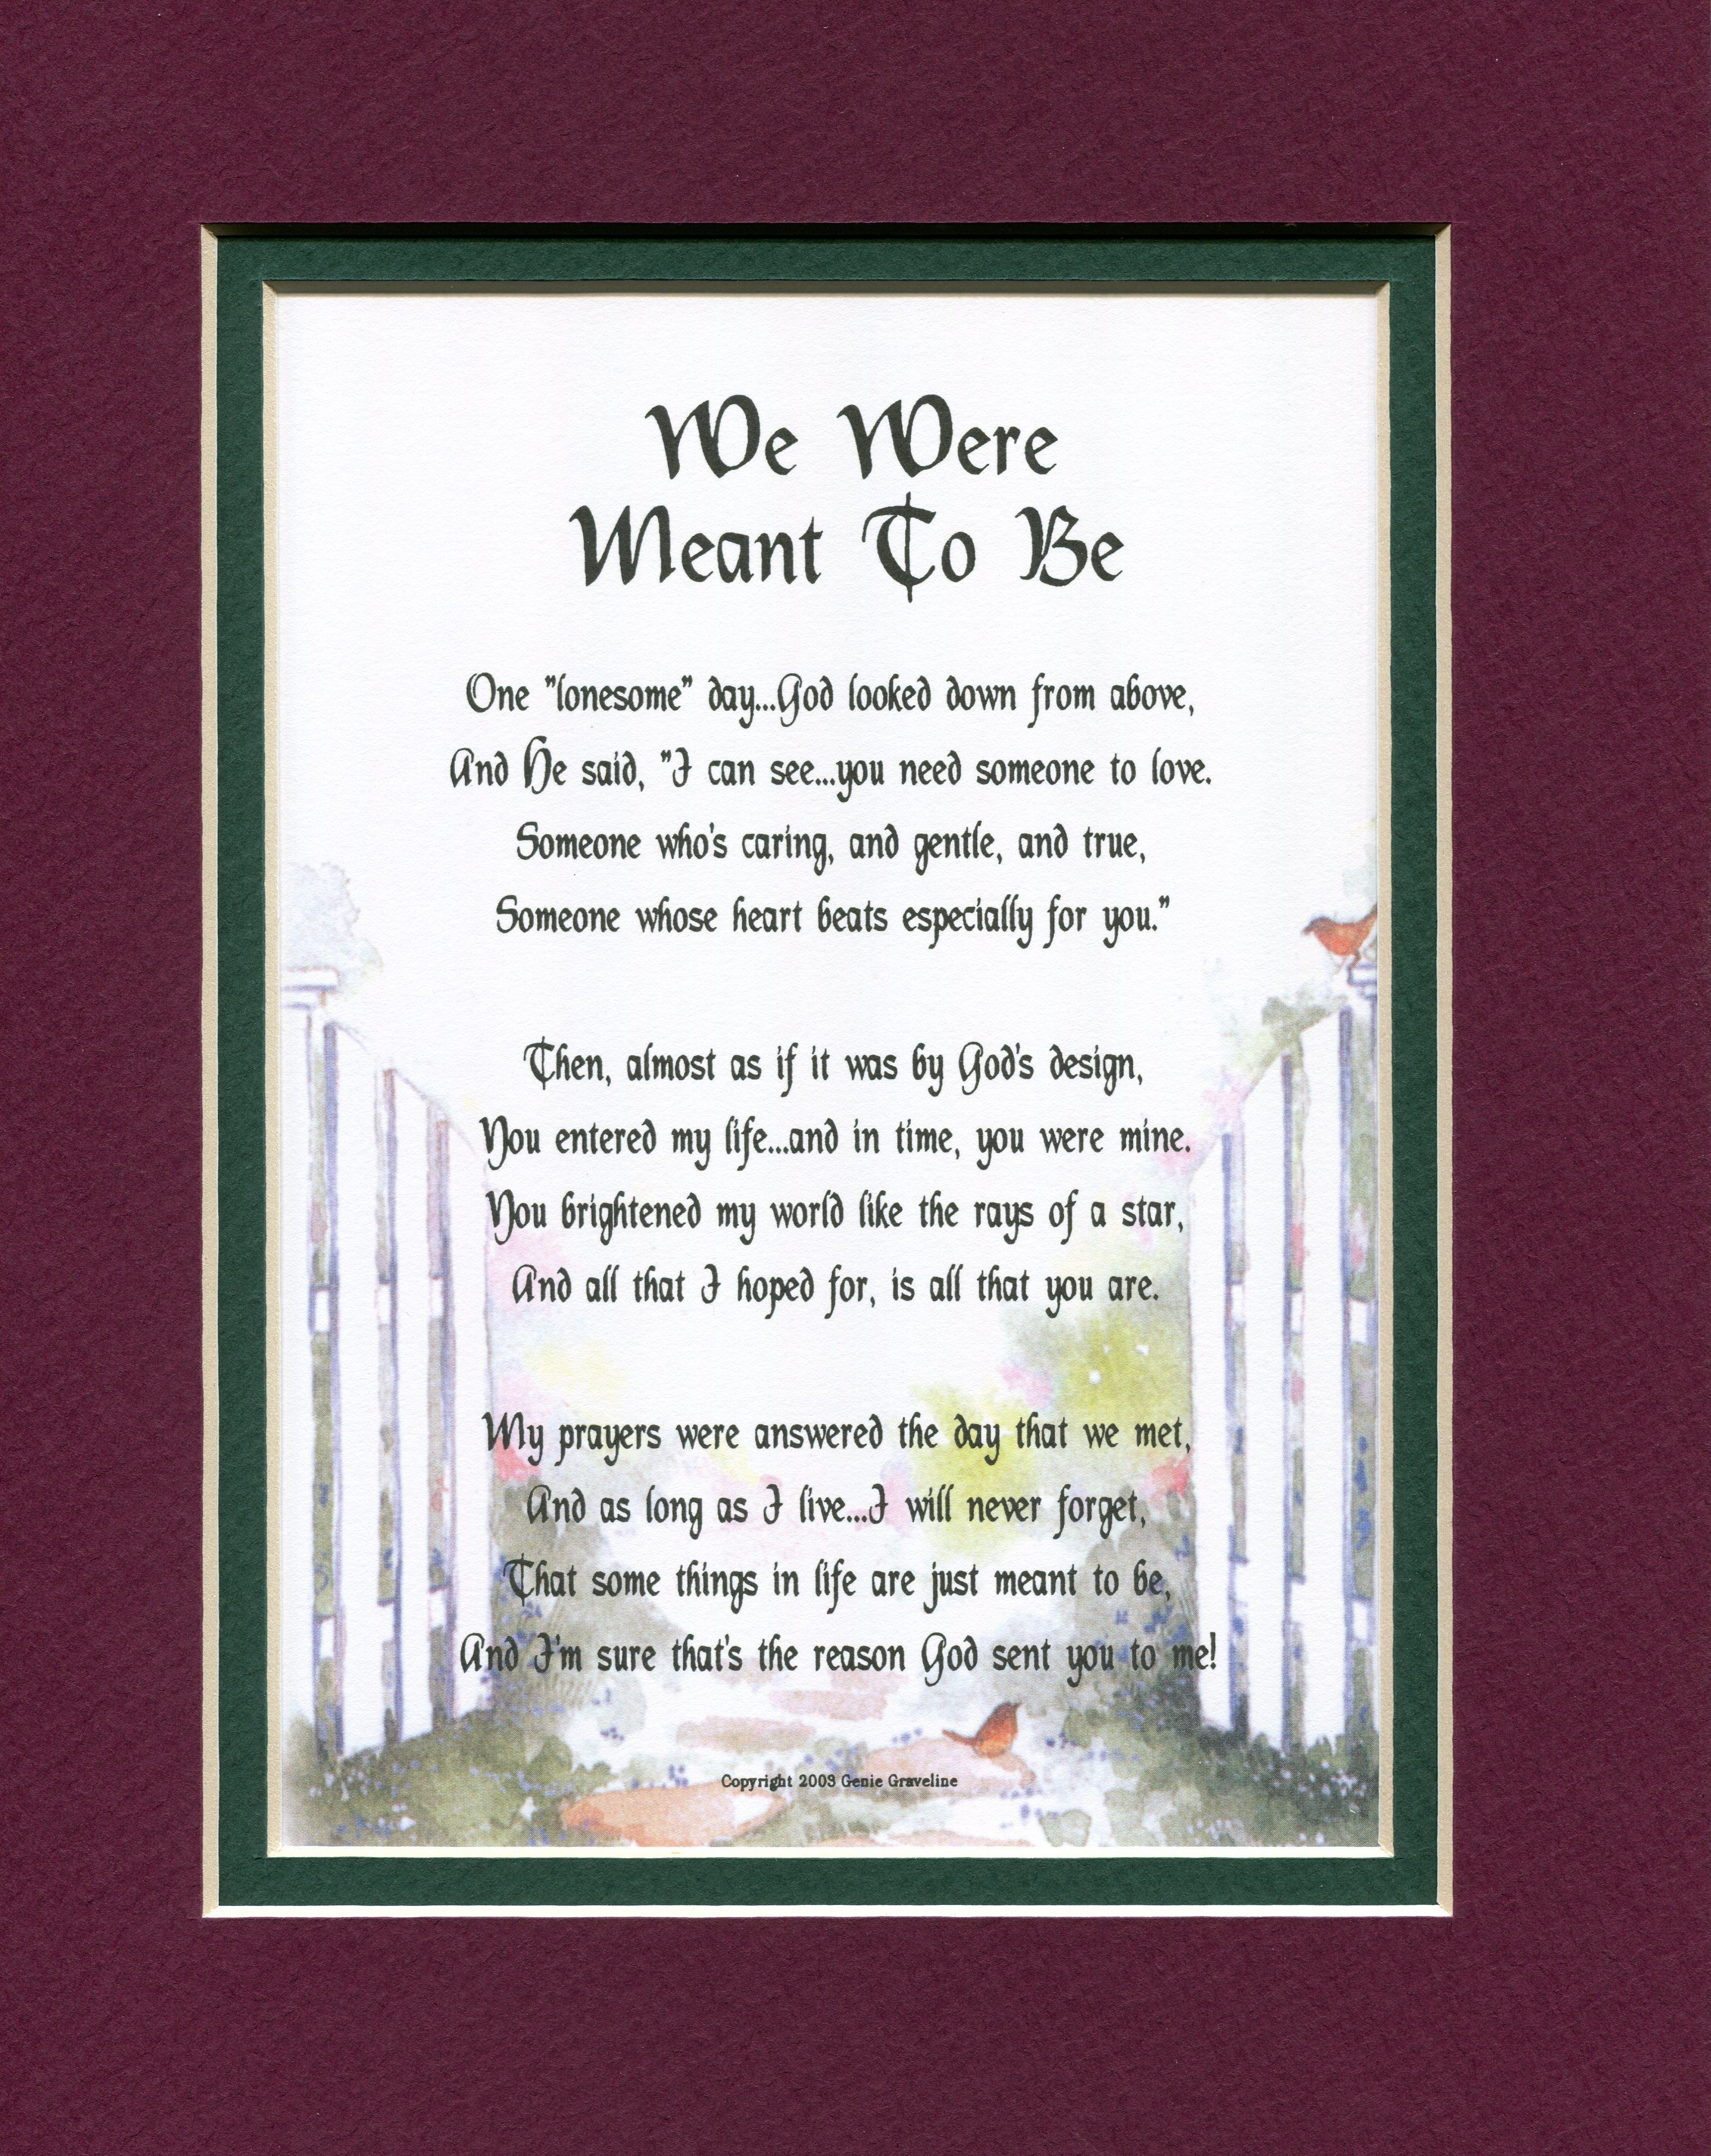 We Were Meant To Be A Sentimental Gift For The One You Love A Wife